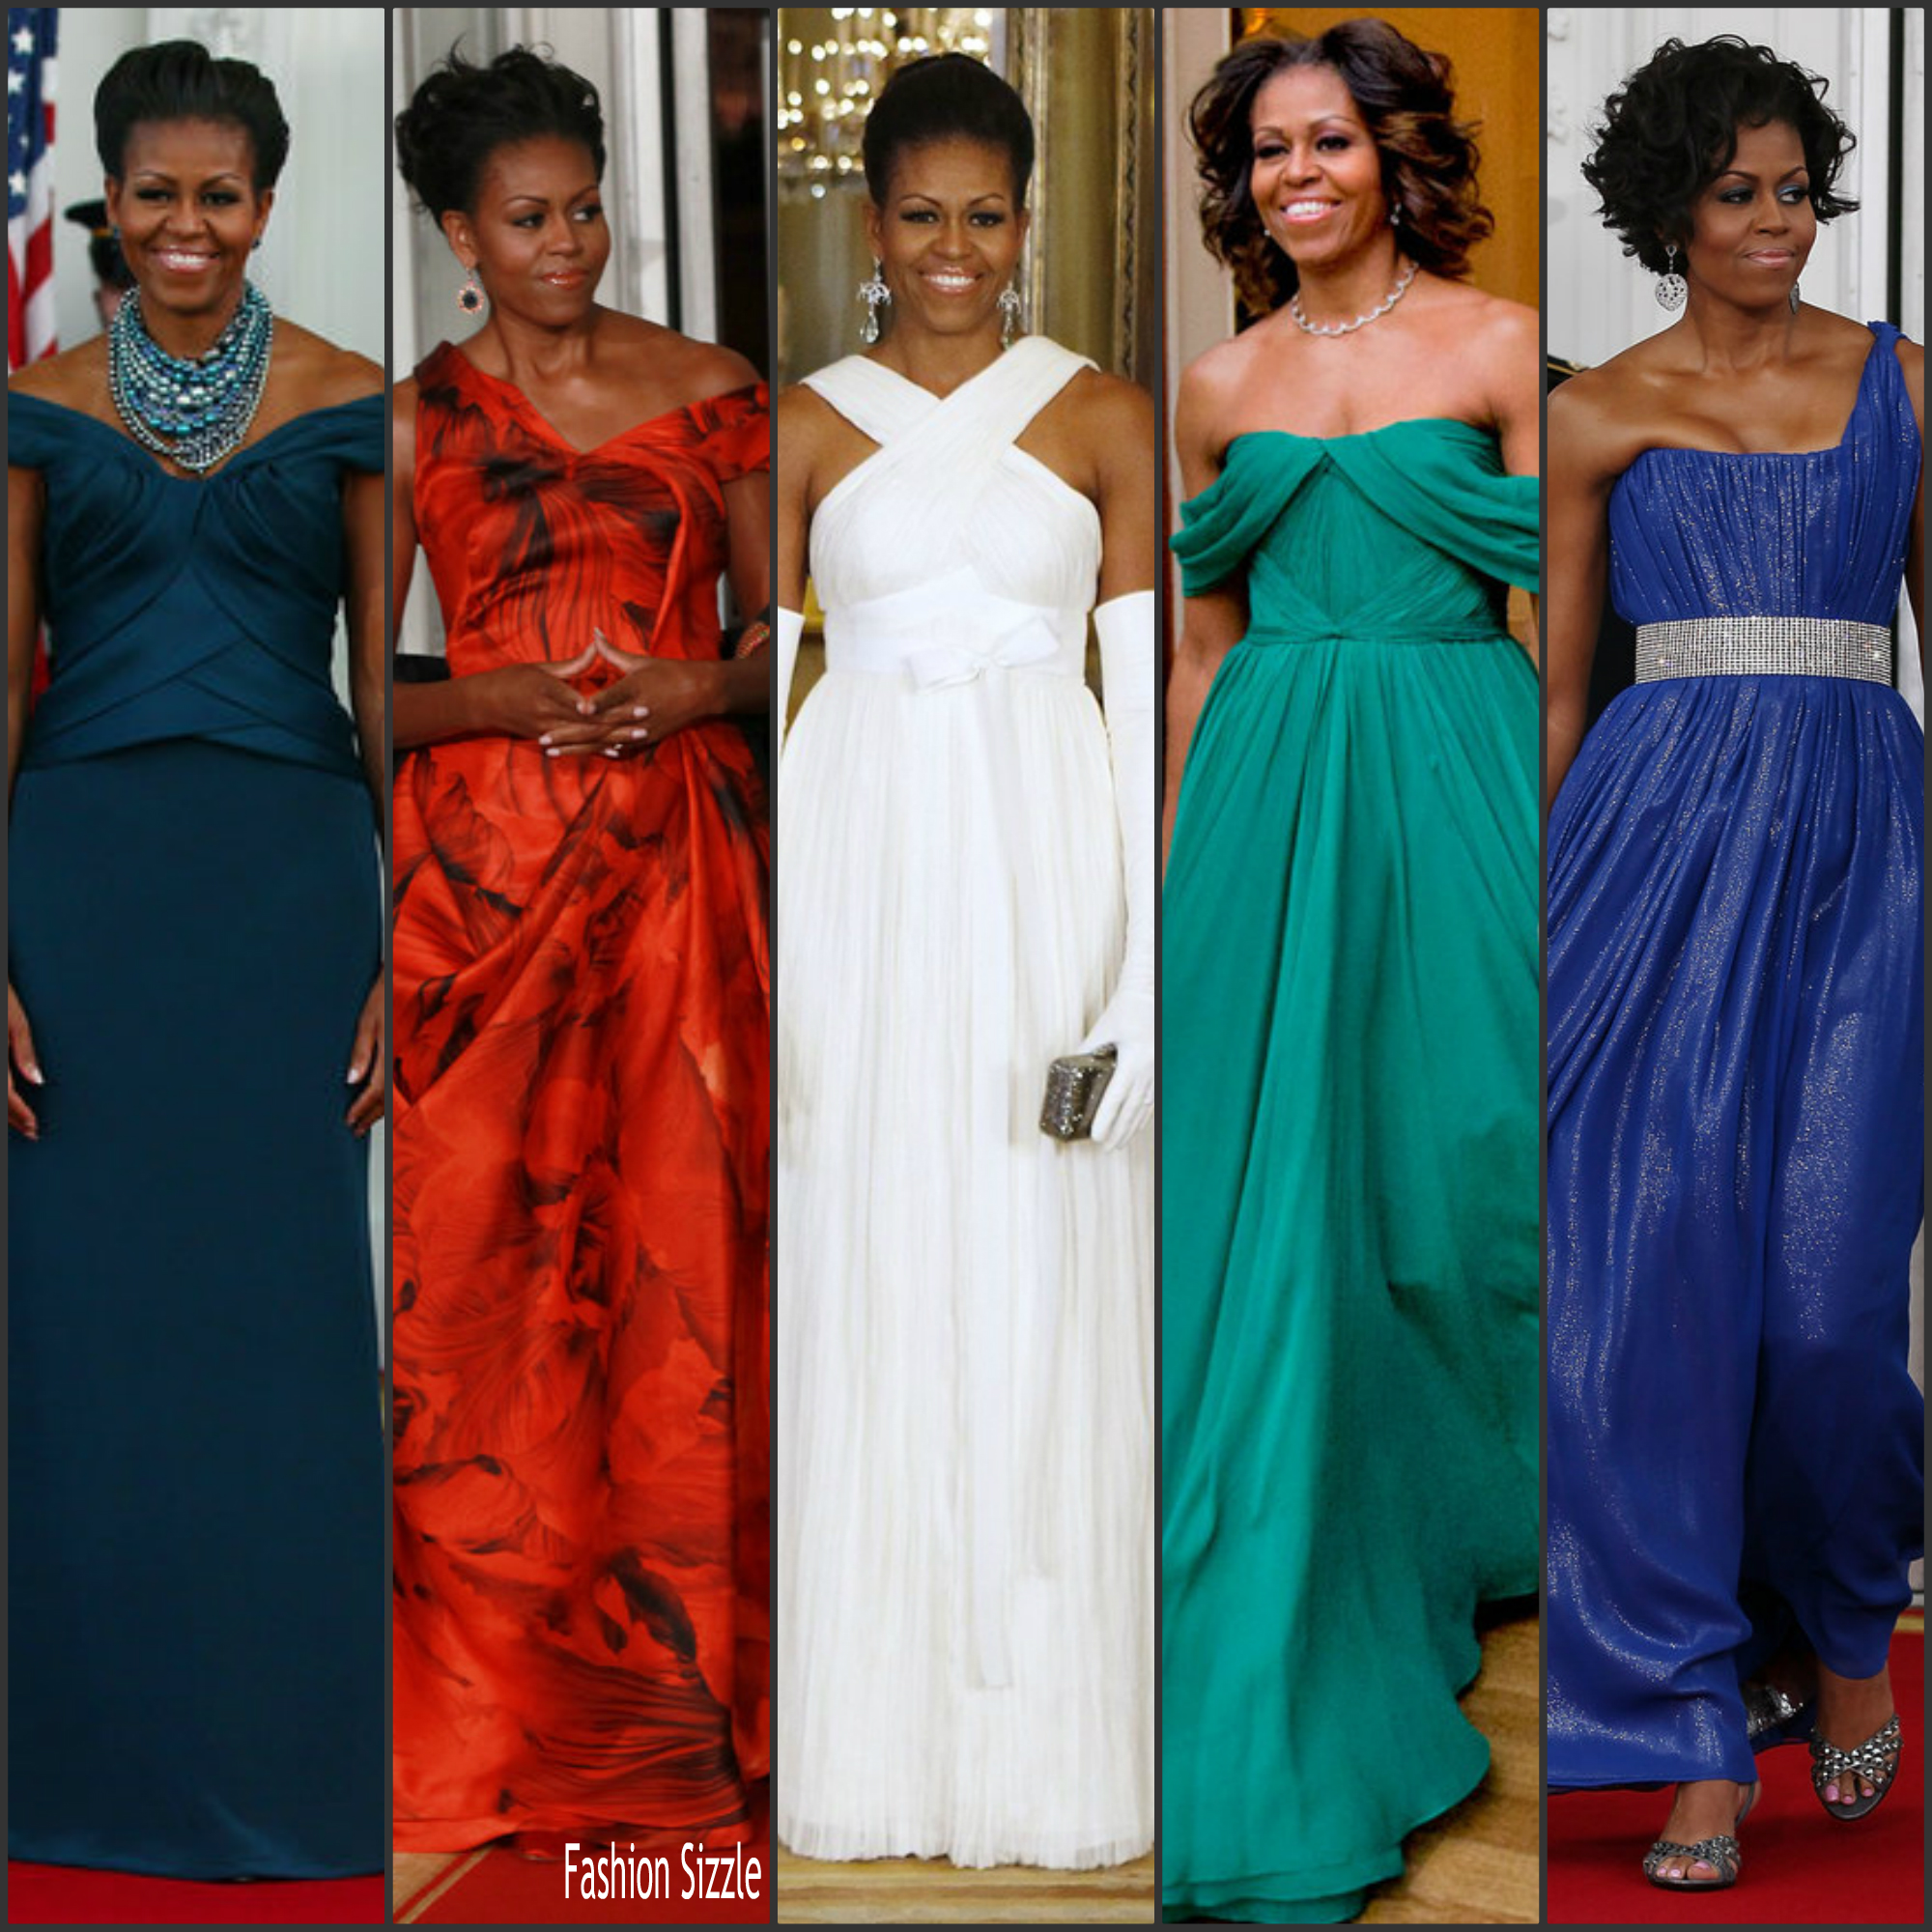 Michelle Obama s Best Looks Ever m 53